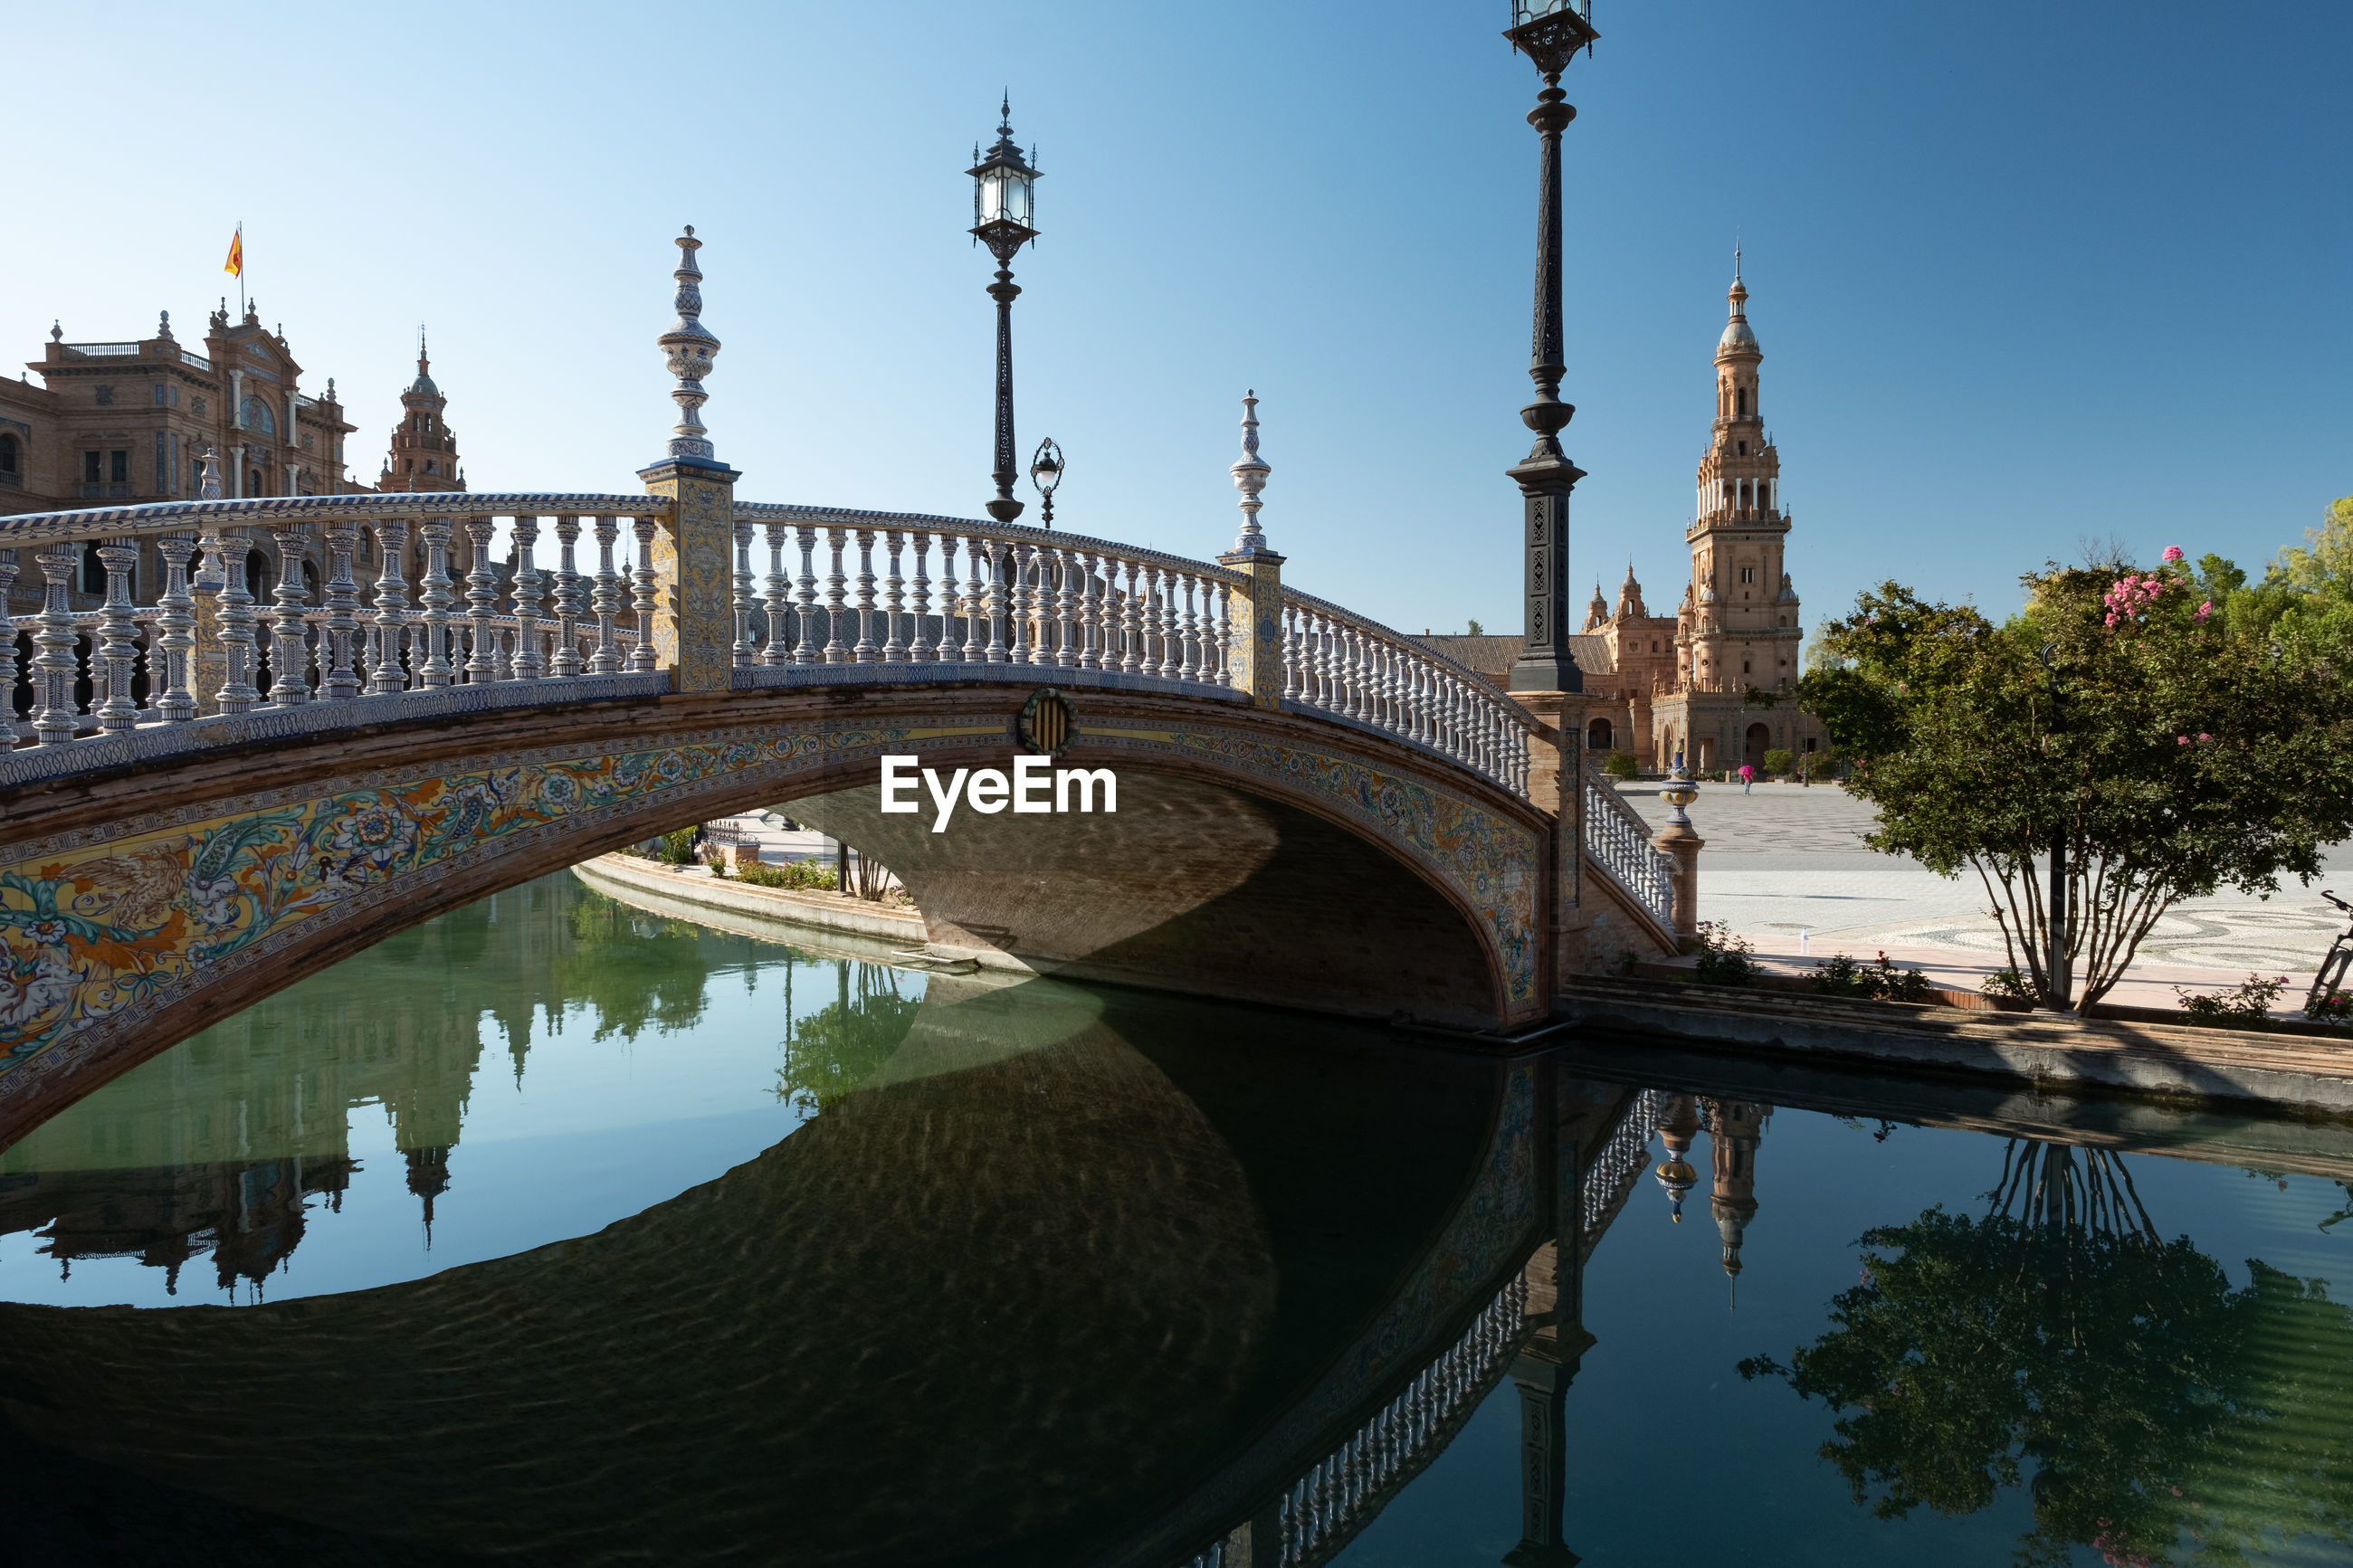 Bridge over water in city against clear sky